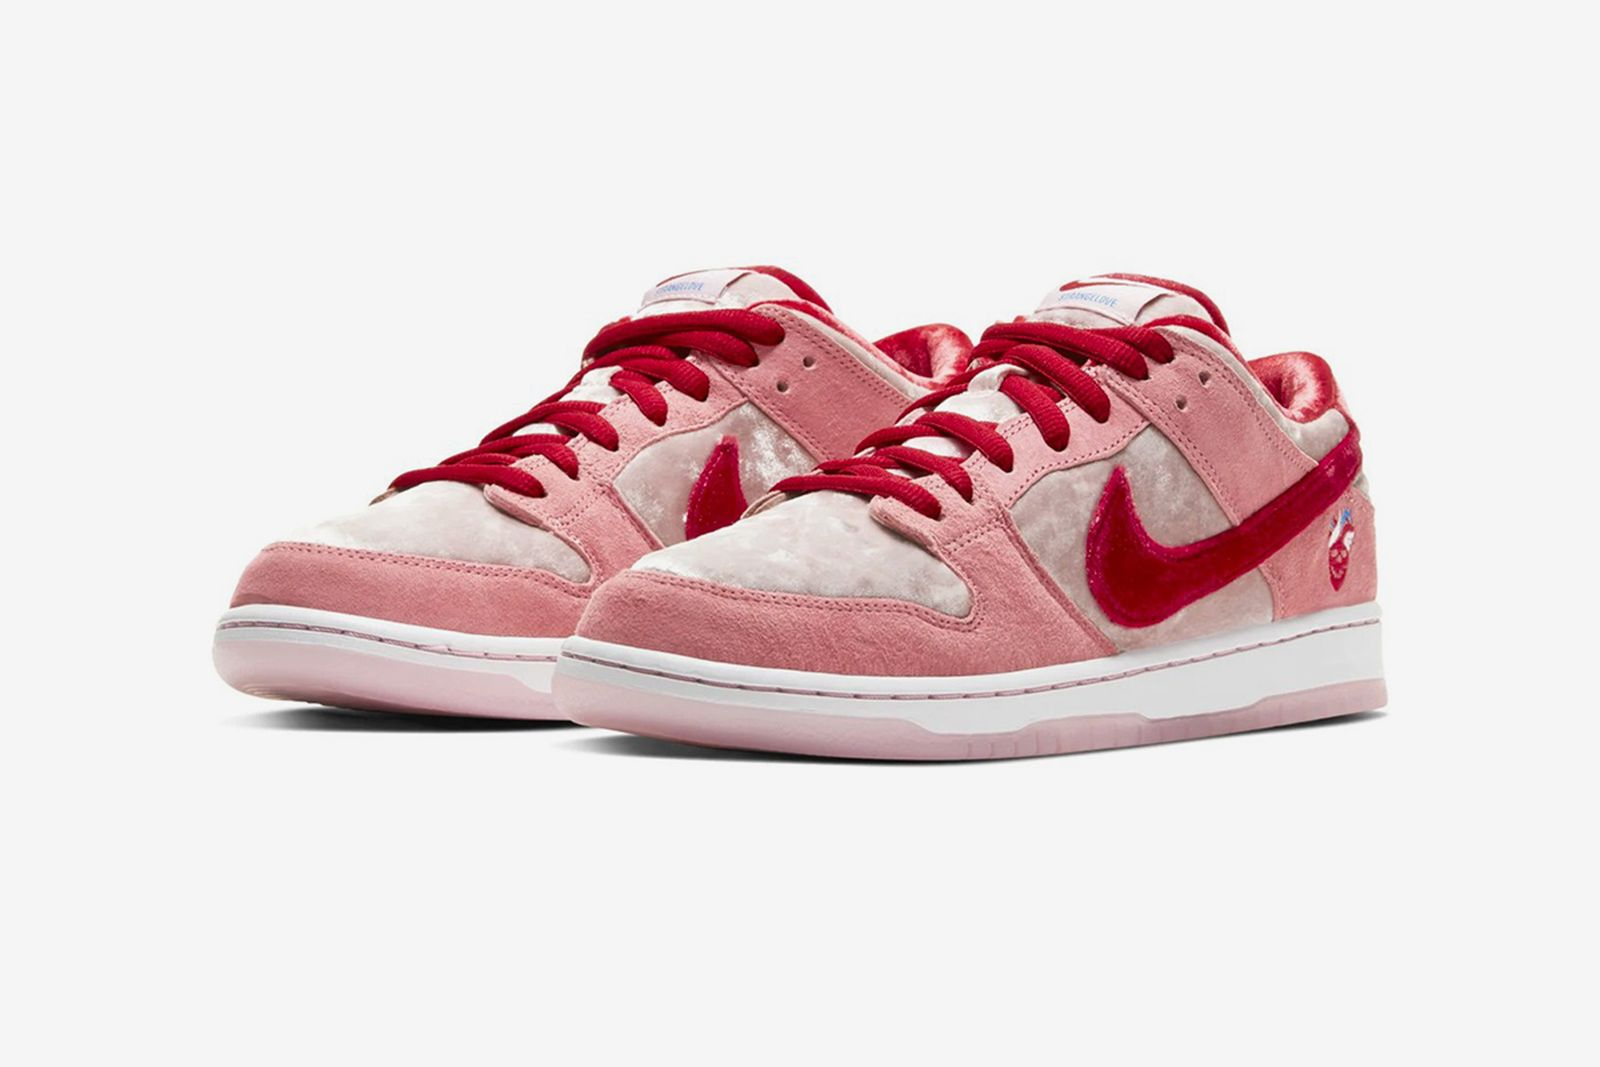 StrangeLove x Nike SB Dunk Low: How & Where to Buy Today